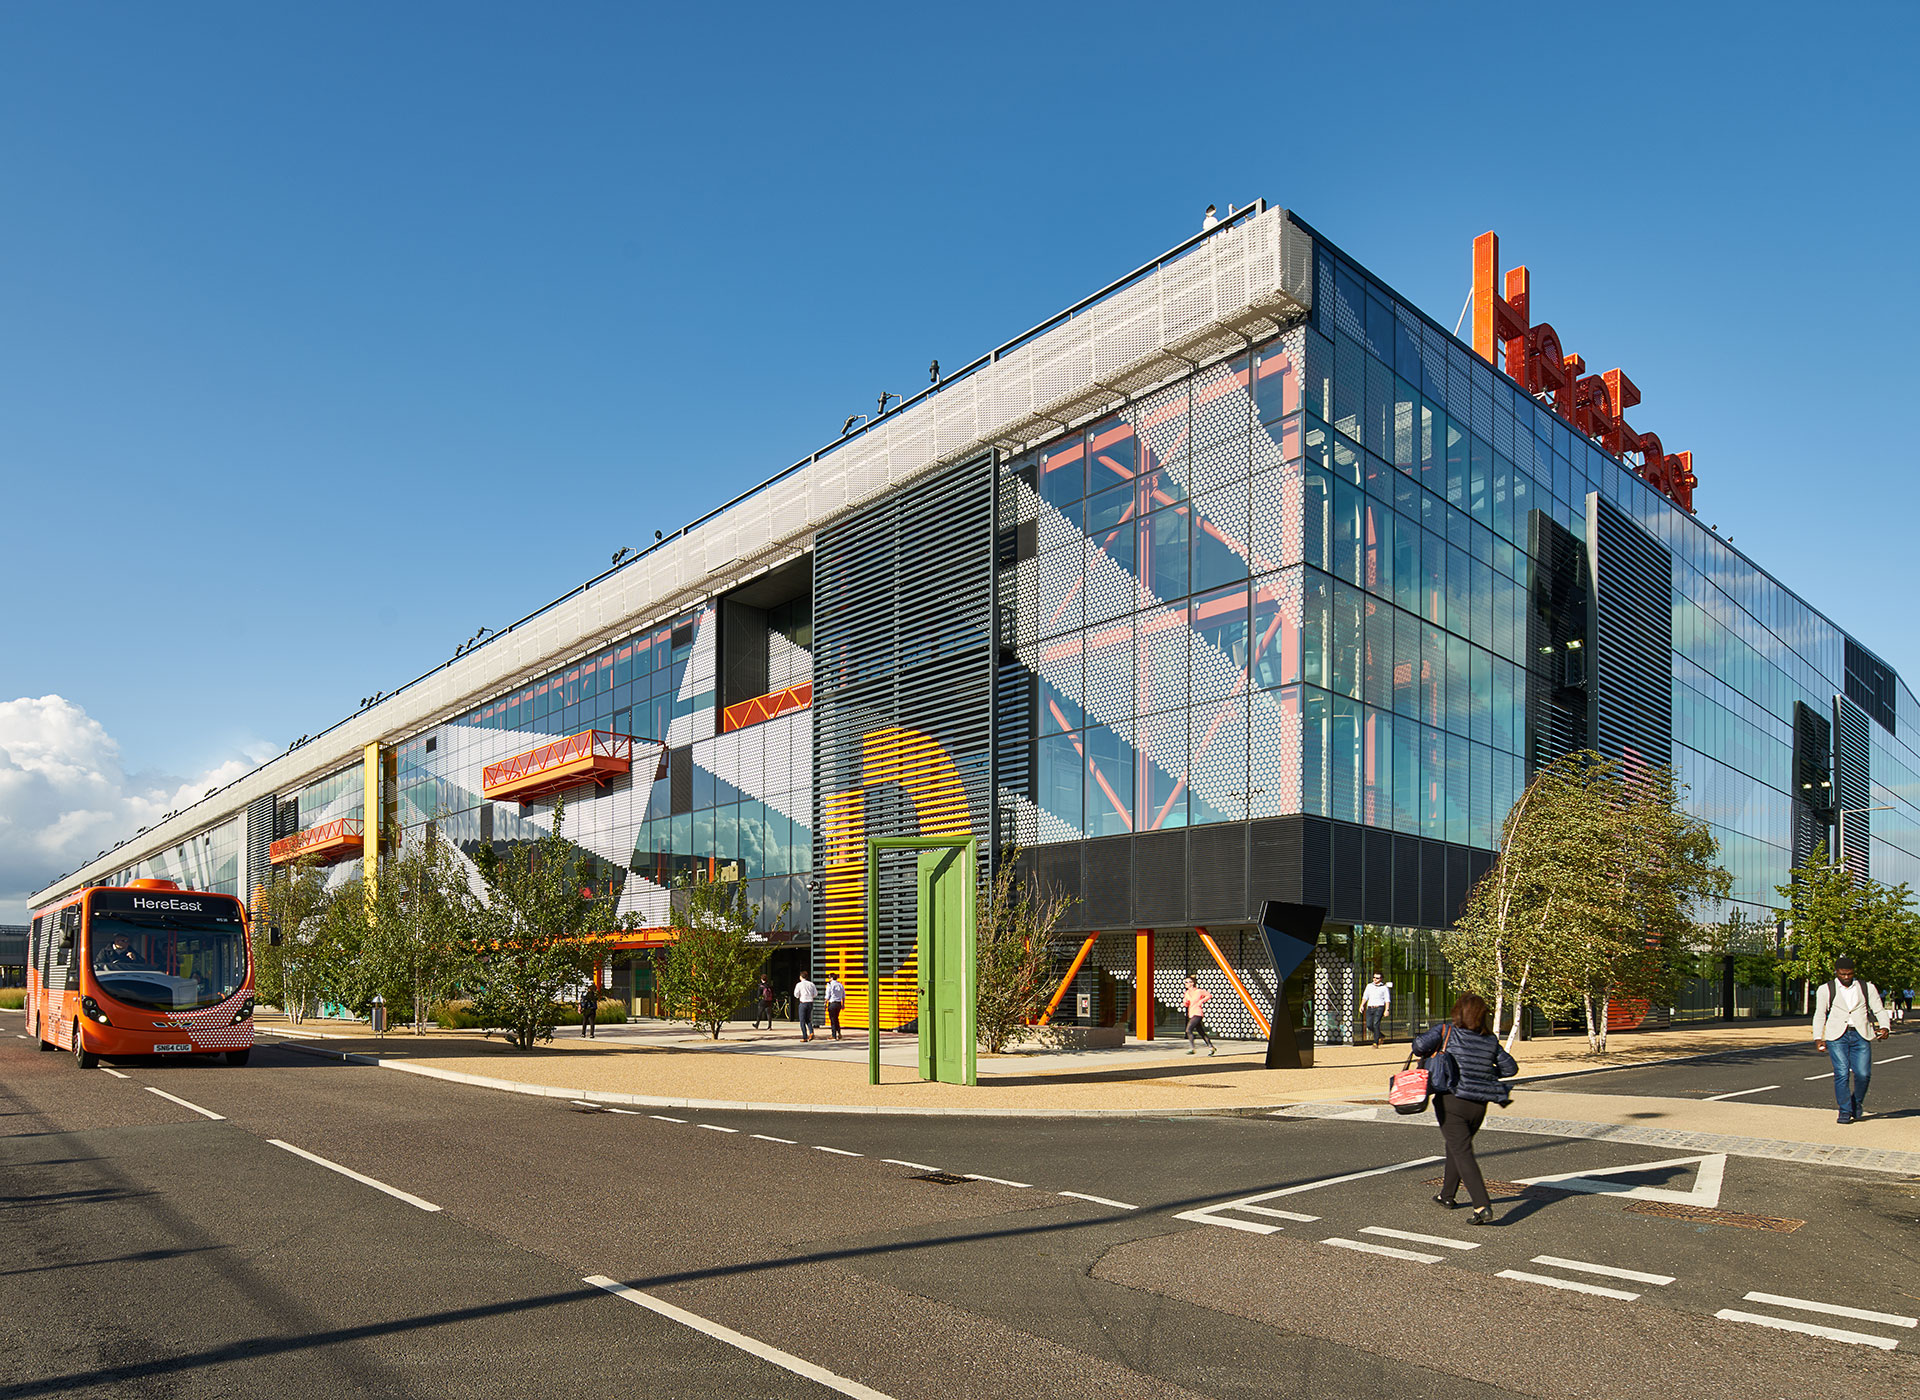 Inside Here East: What makes a successful tech hub?